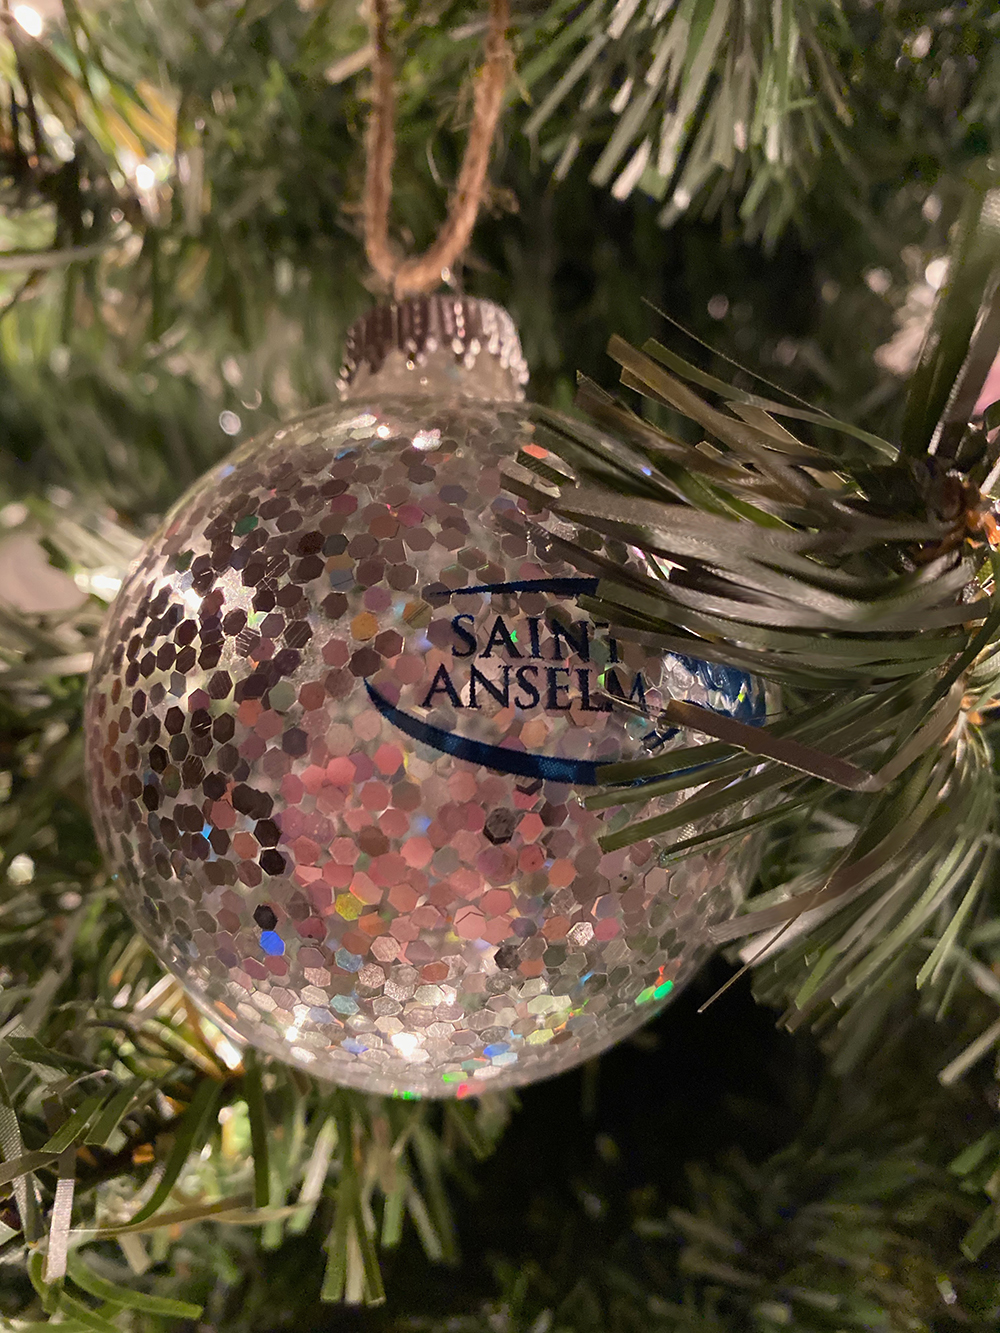 Saint Anselm College Holiday Ornament hangs on a pine tree